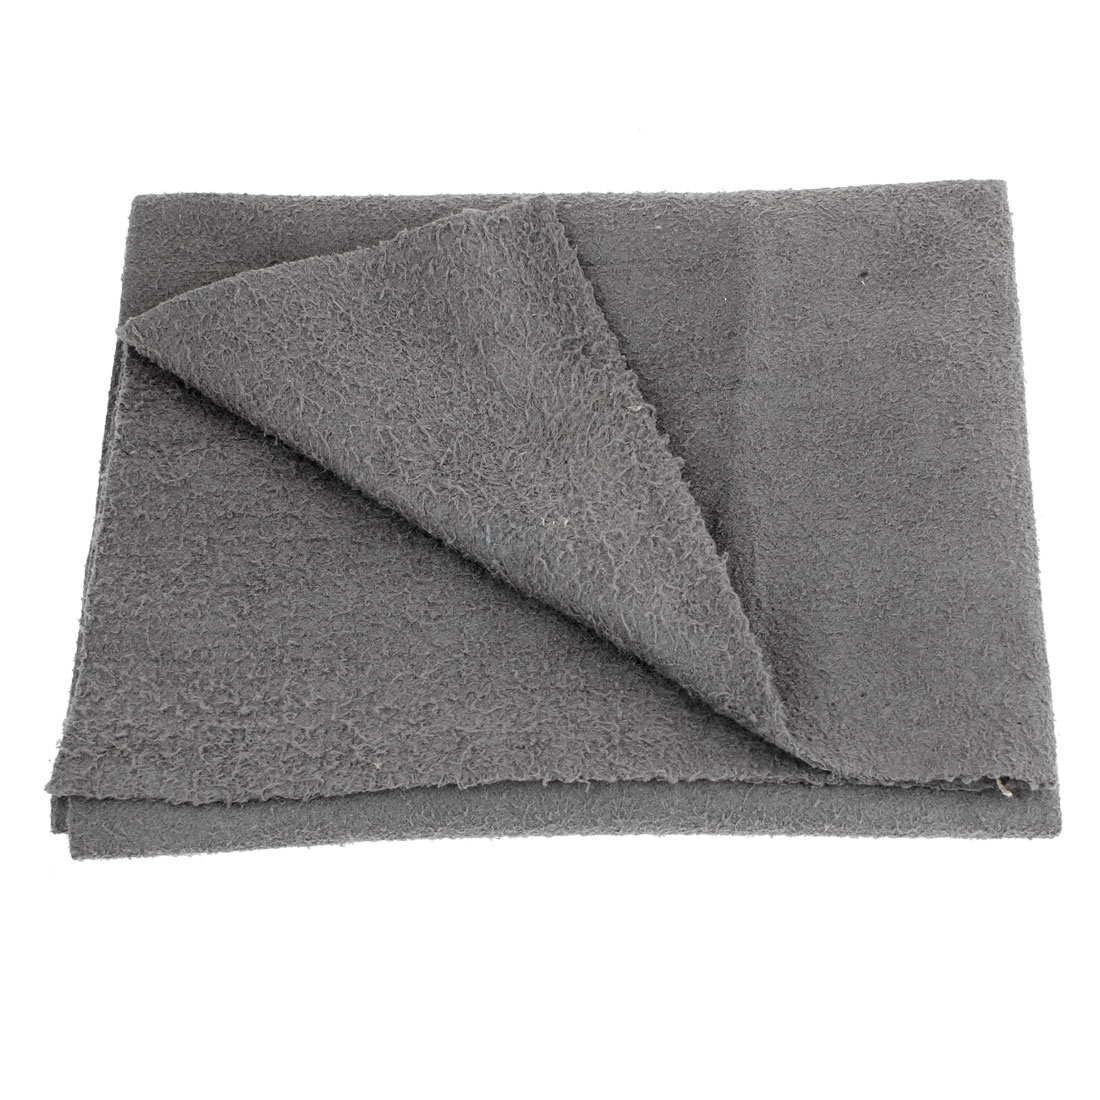 Rectangle Gray 46cm x 39cm Microfiber Polishing Towel Cleaning Cloth for Car